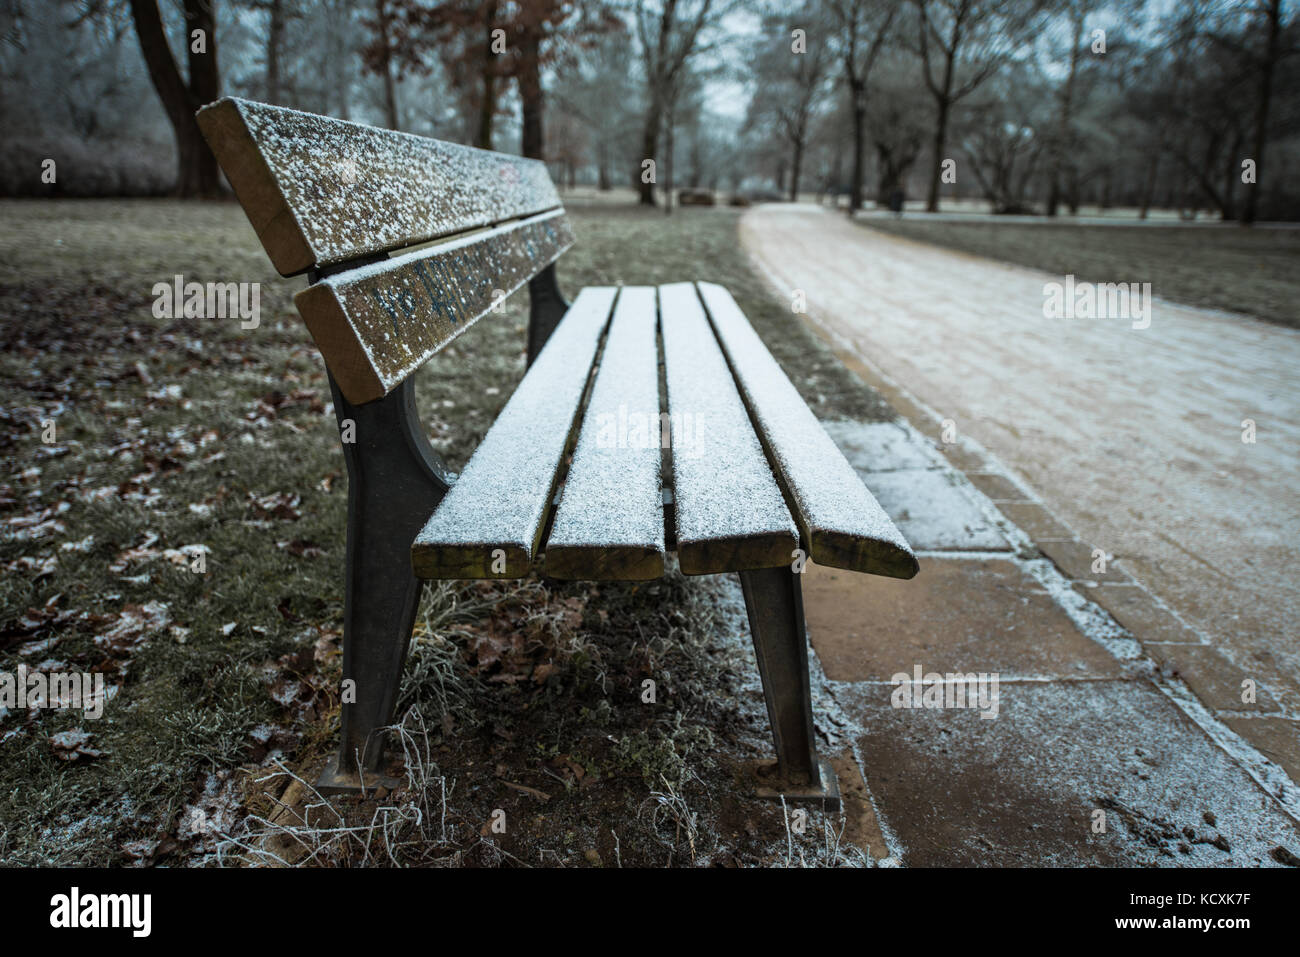 Bench in a park on a cold winter day - Stock Image